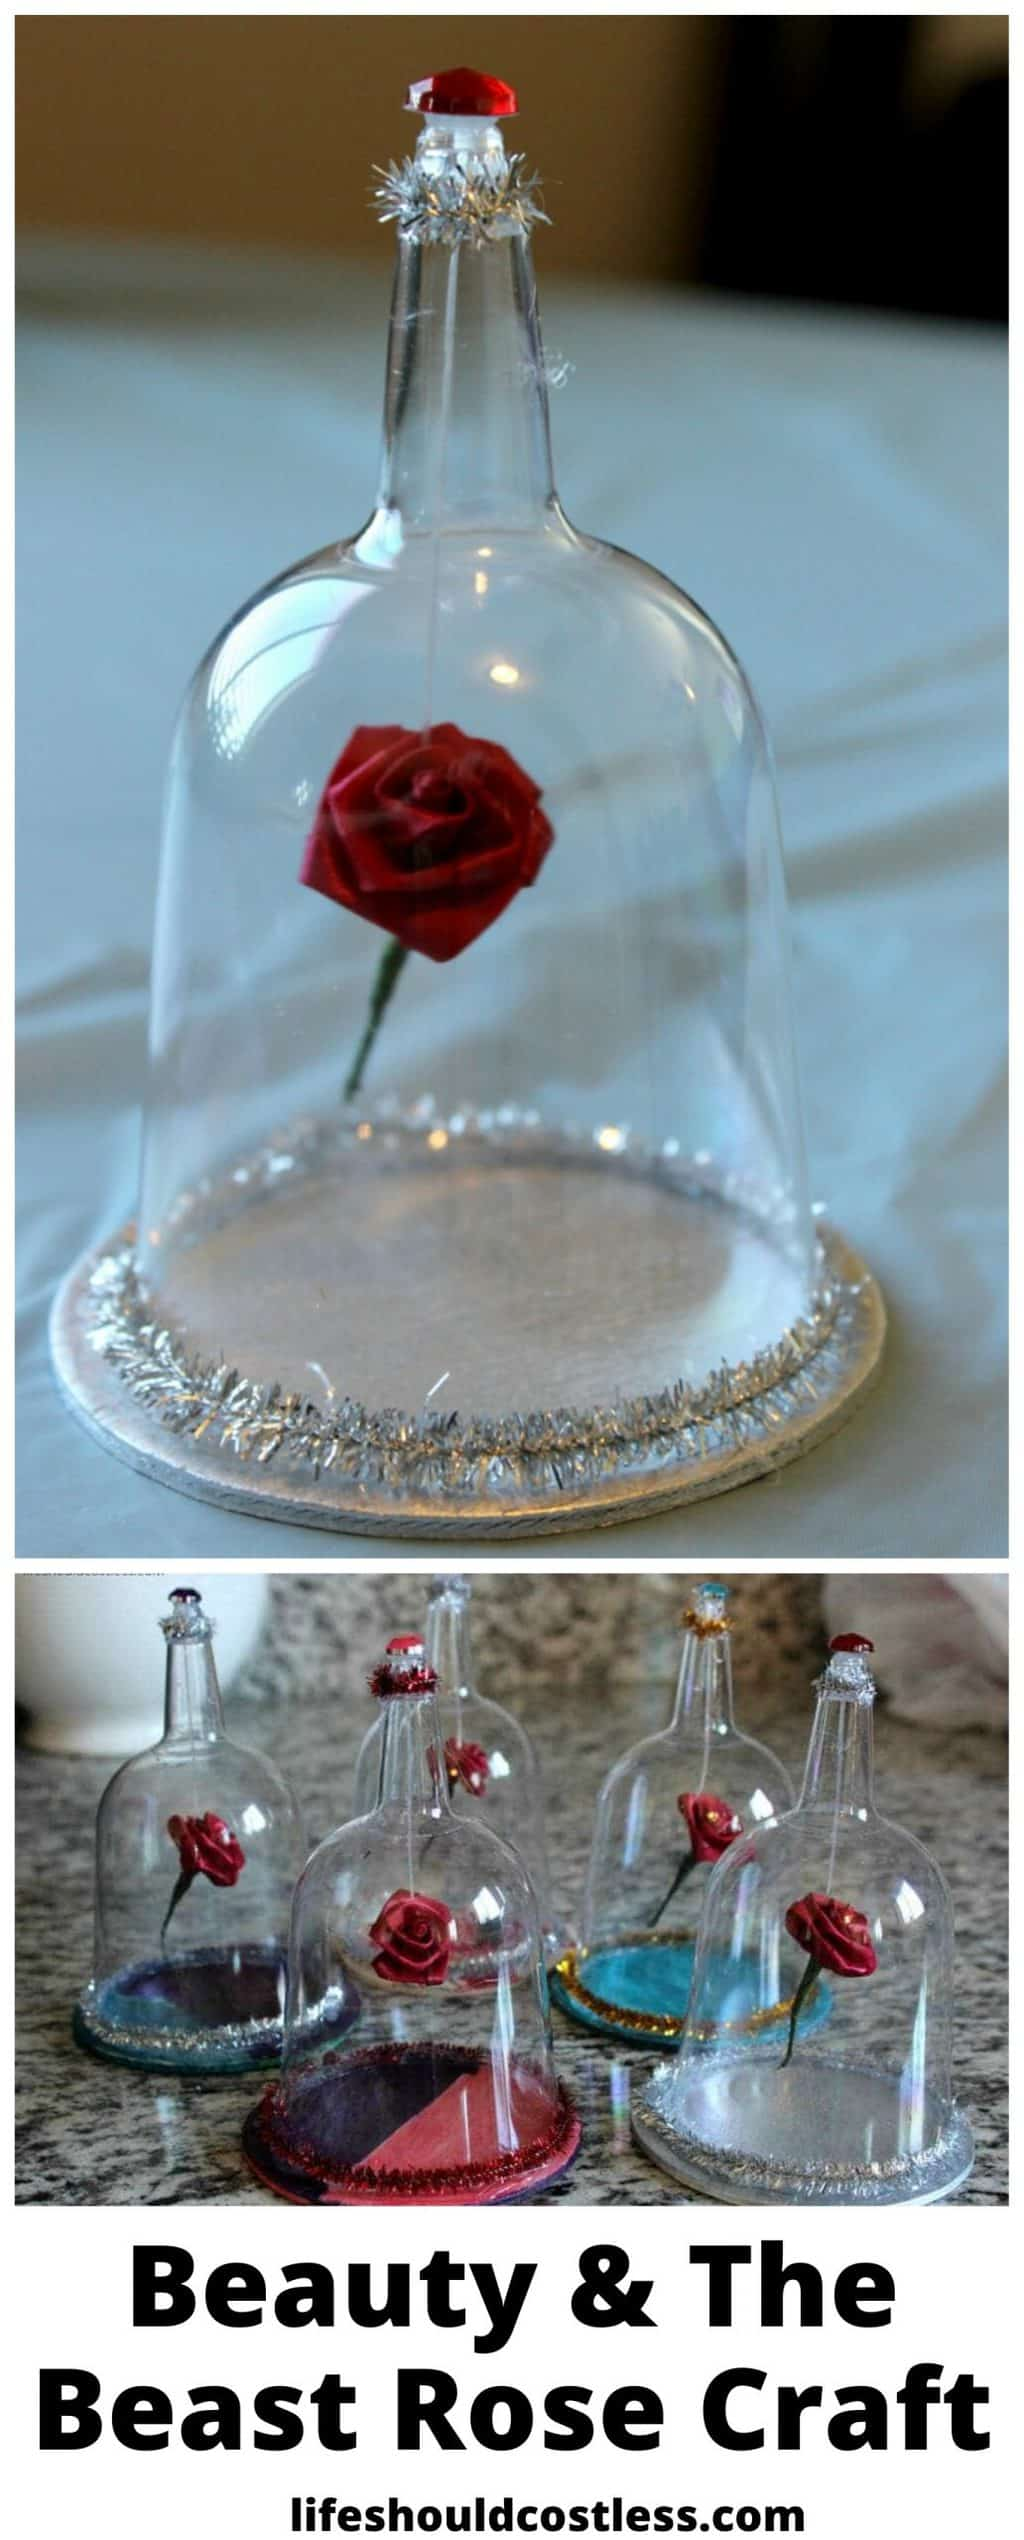 Beauty and the beast rose craft. lifeshouldcostless.com